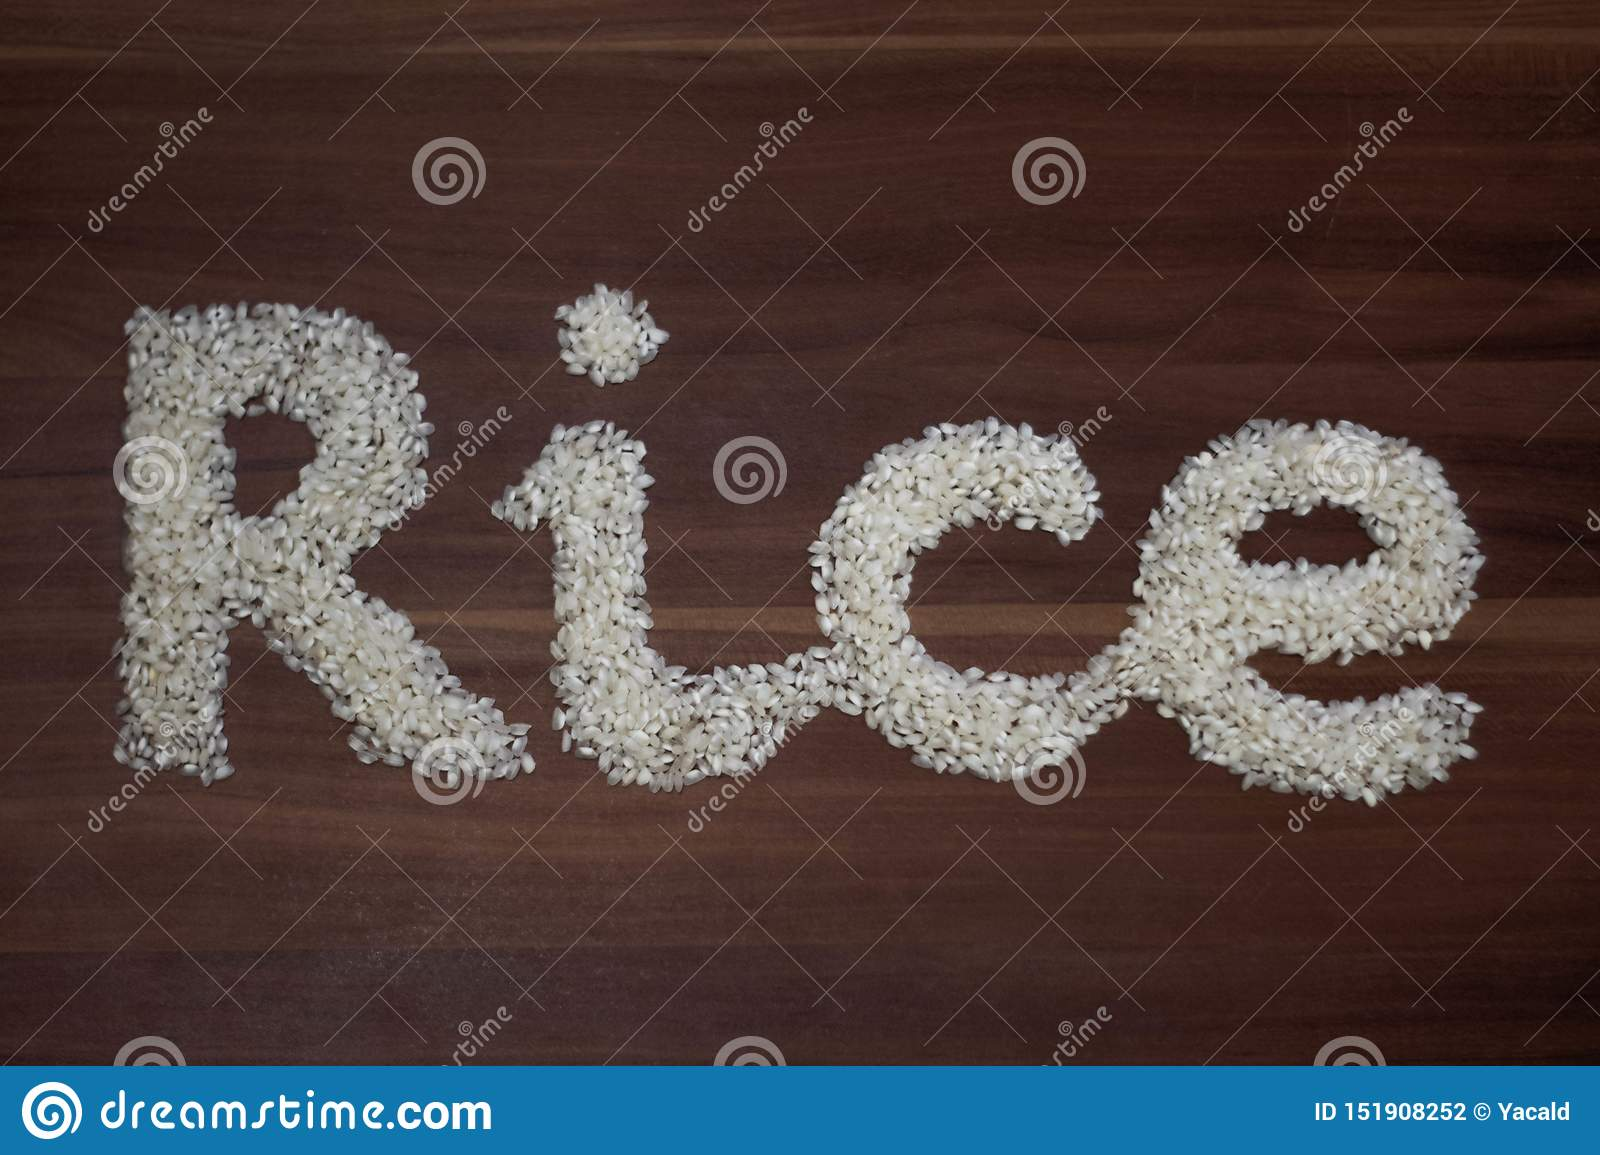 `Rice` written with rice